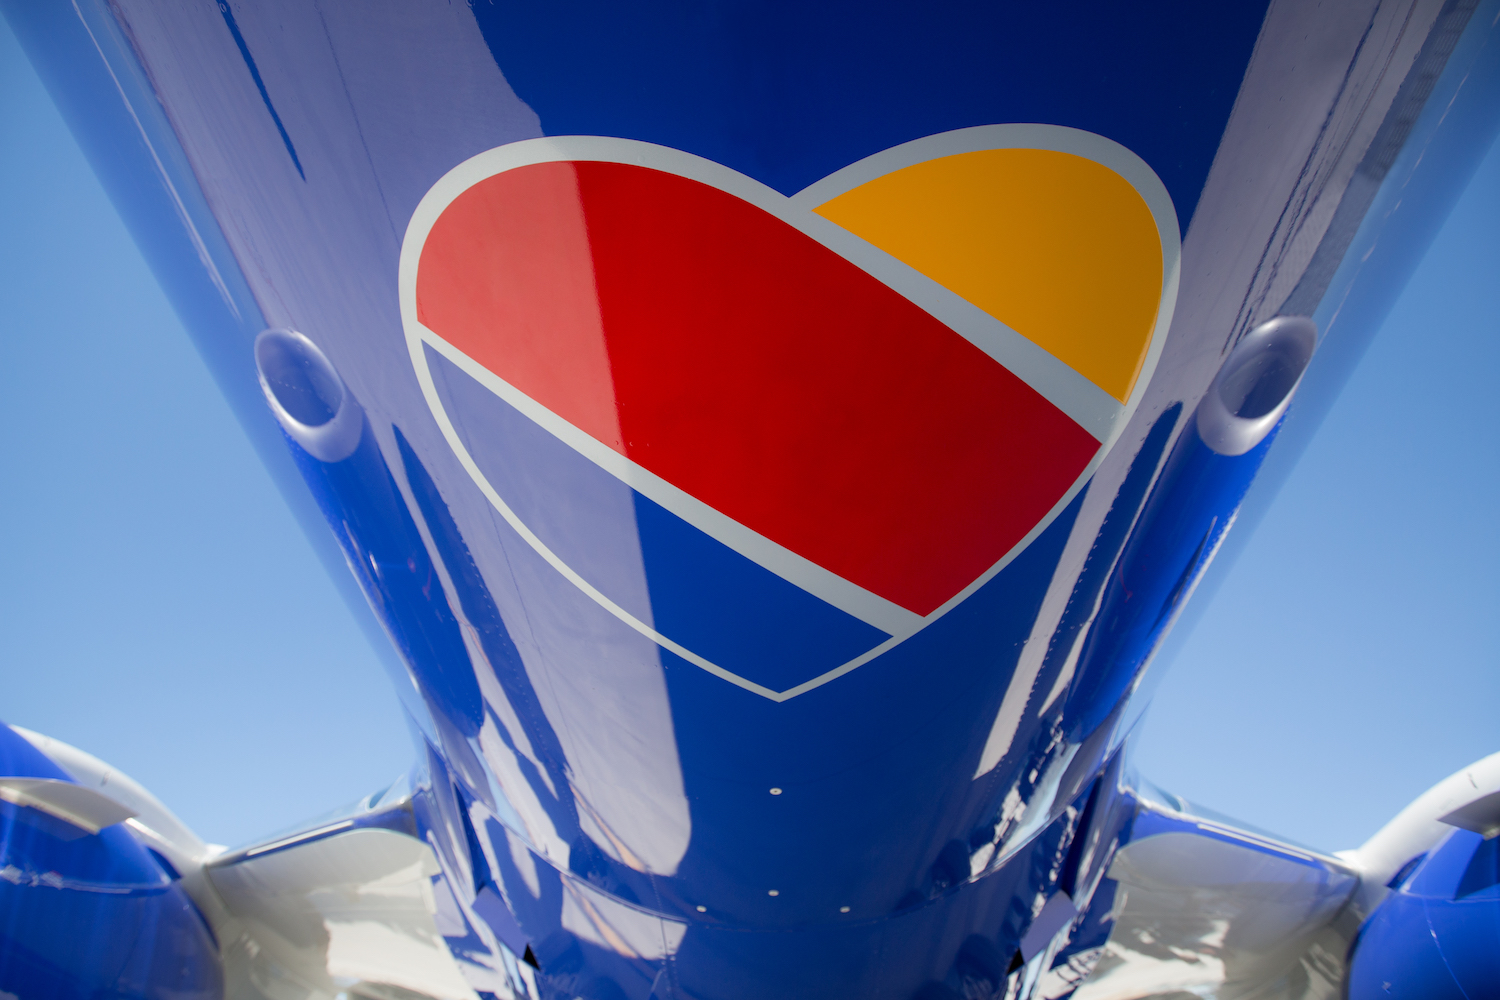 The LUV airline seems all too often to be happy to live with anti-Muslim H8. Image: Southwest